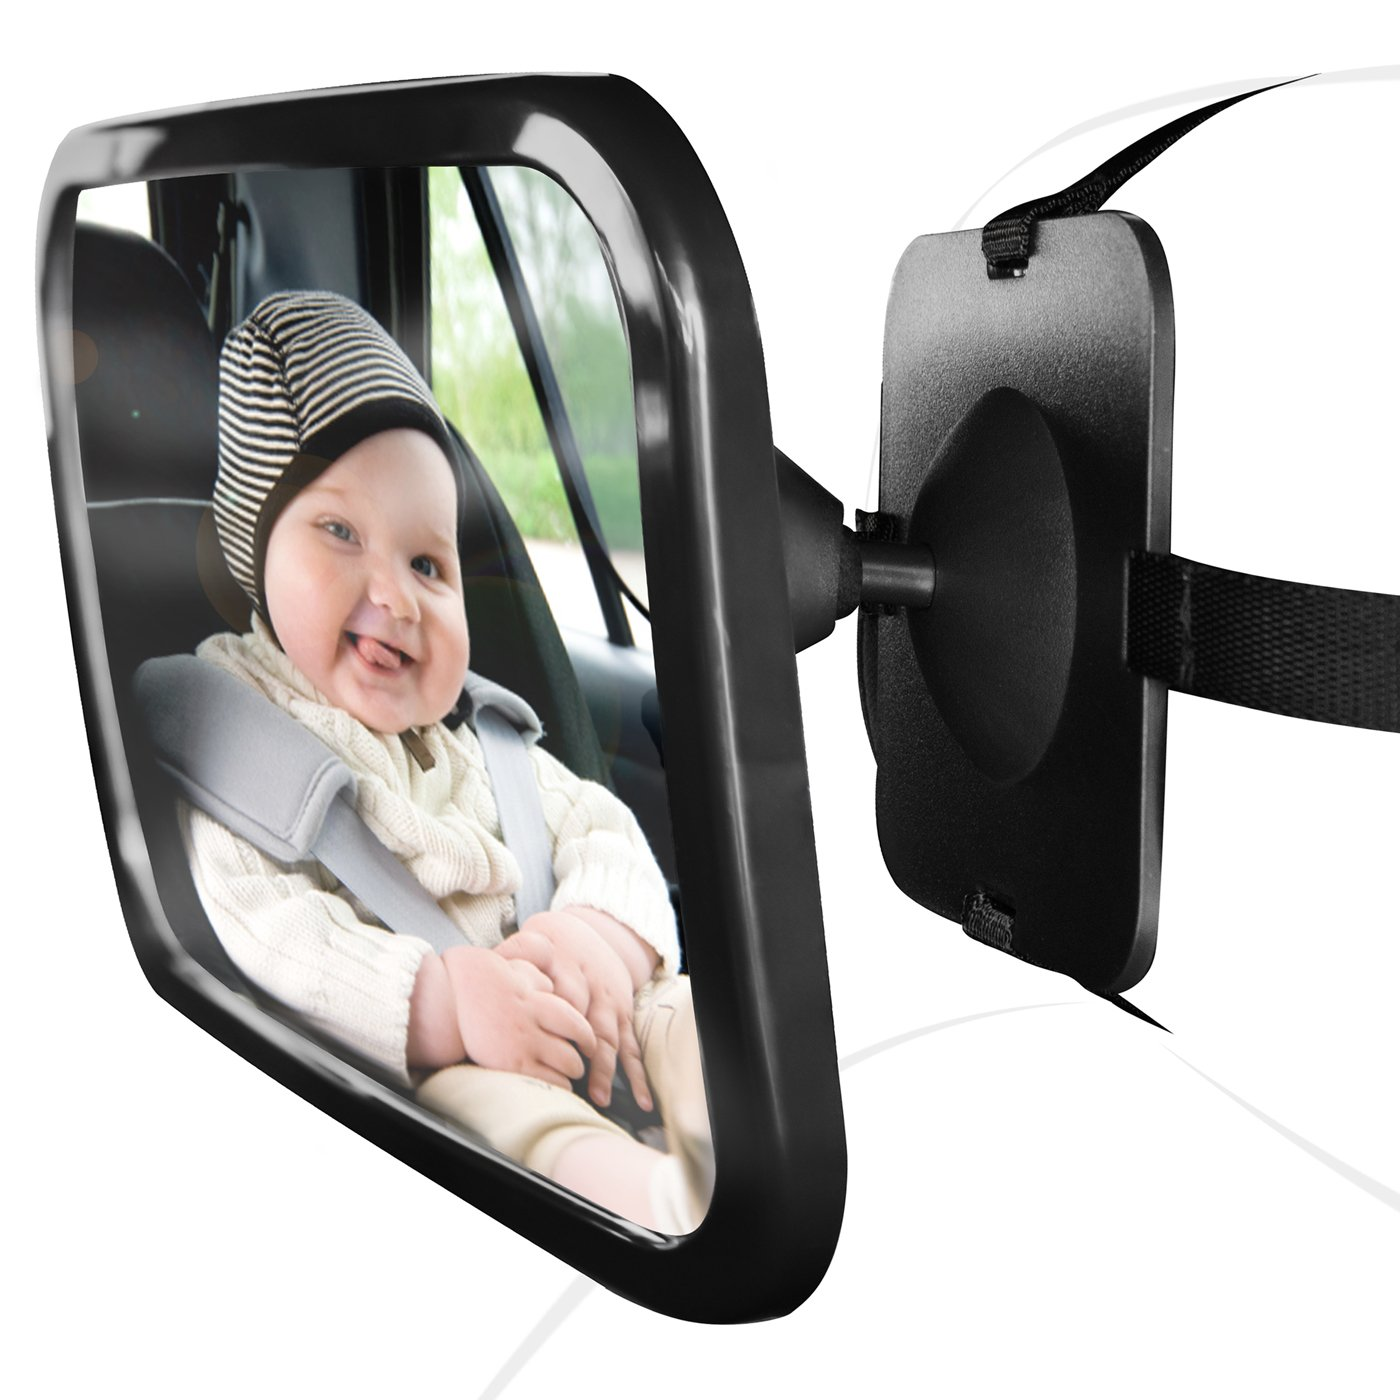 Amazon.com: OxGord Baby Car Mirror for Rear View - Facing Back Seat ...